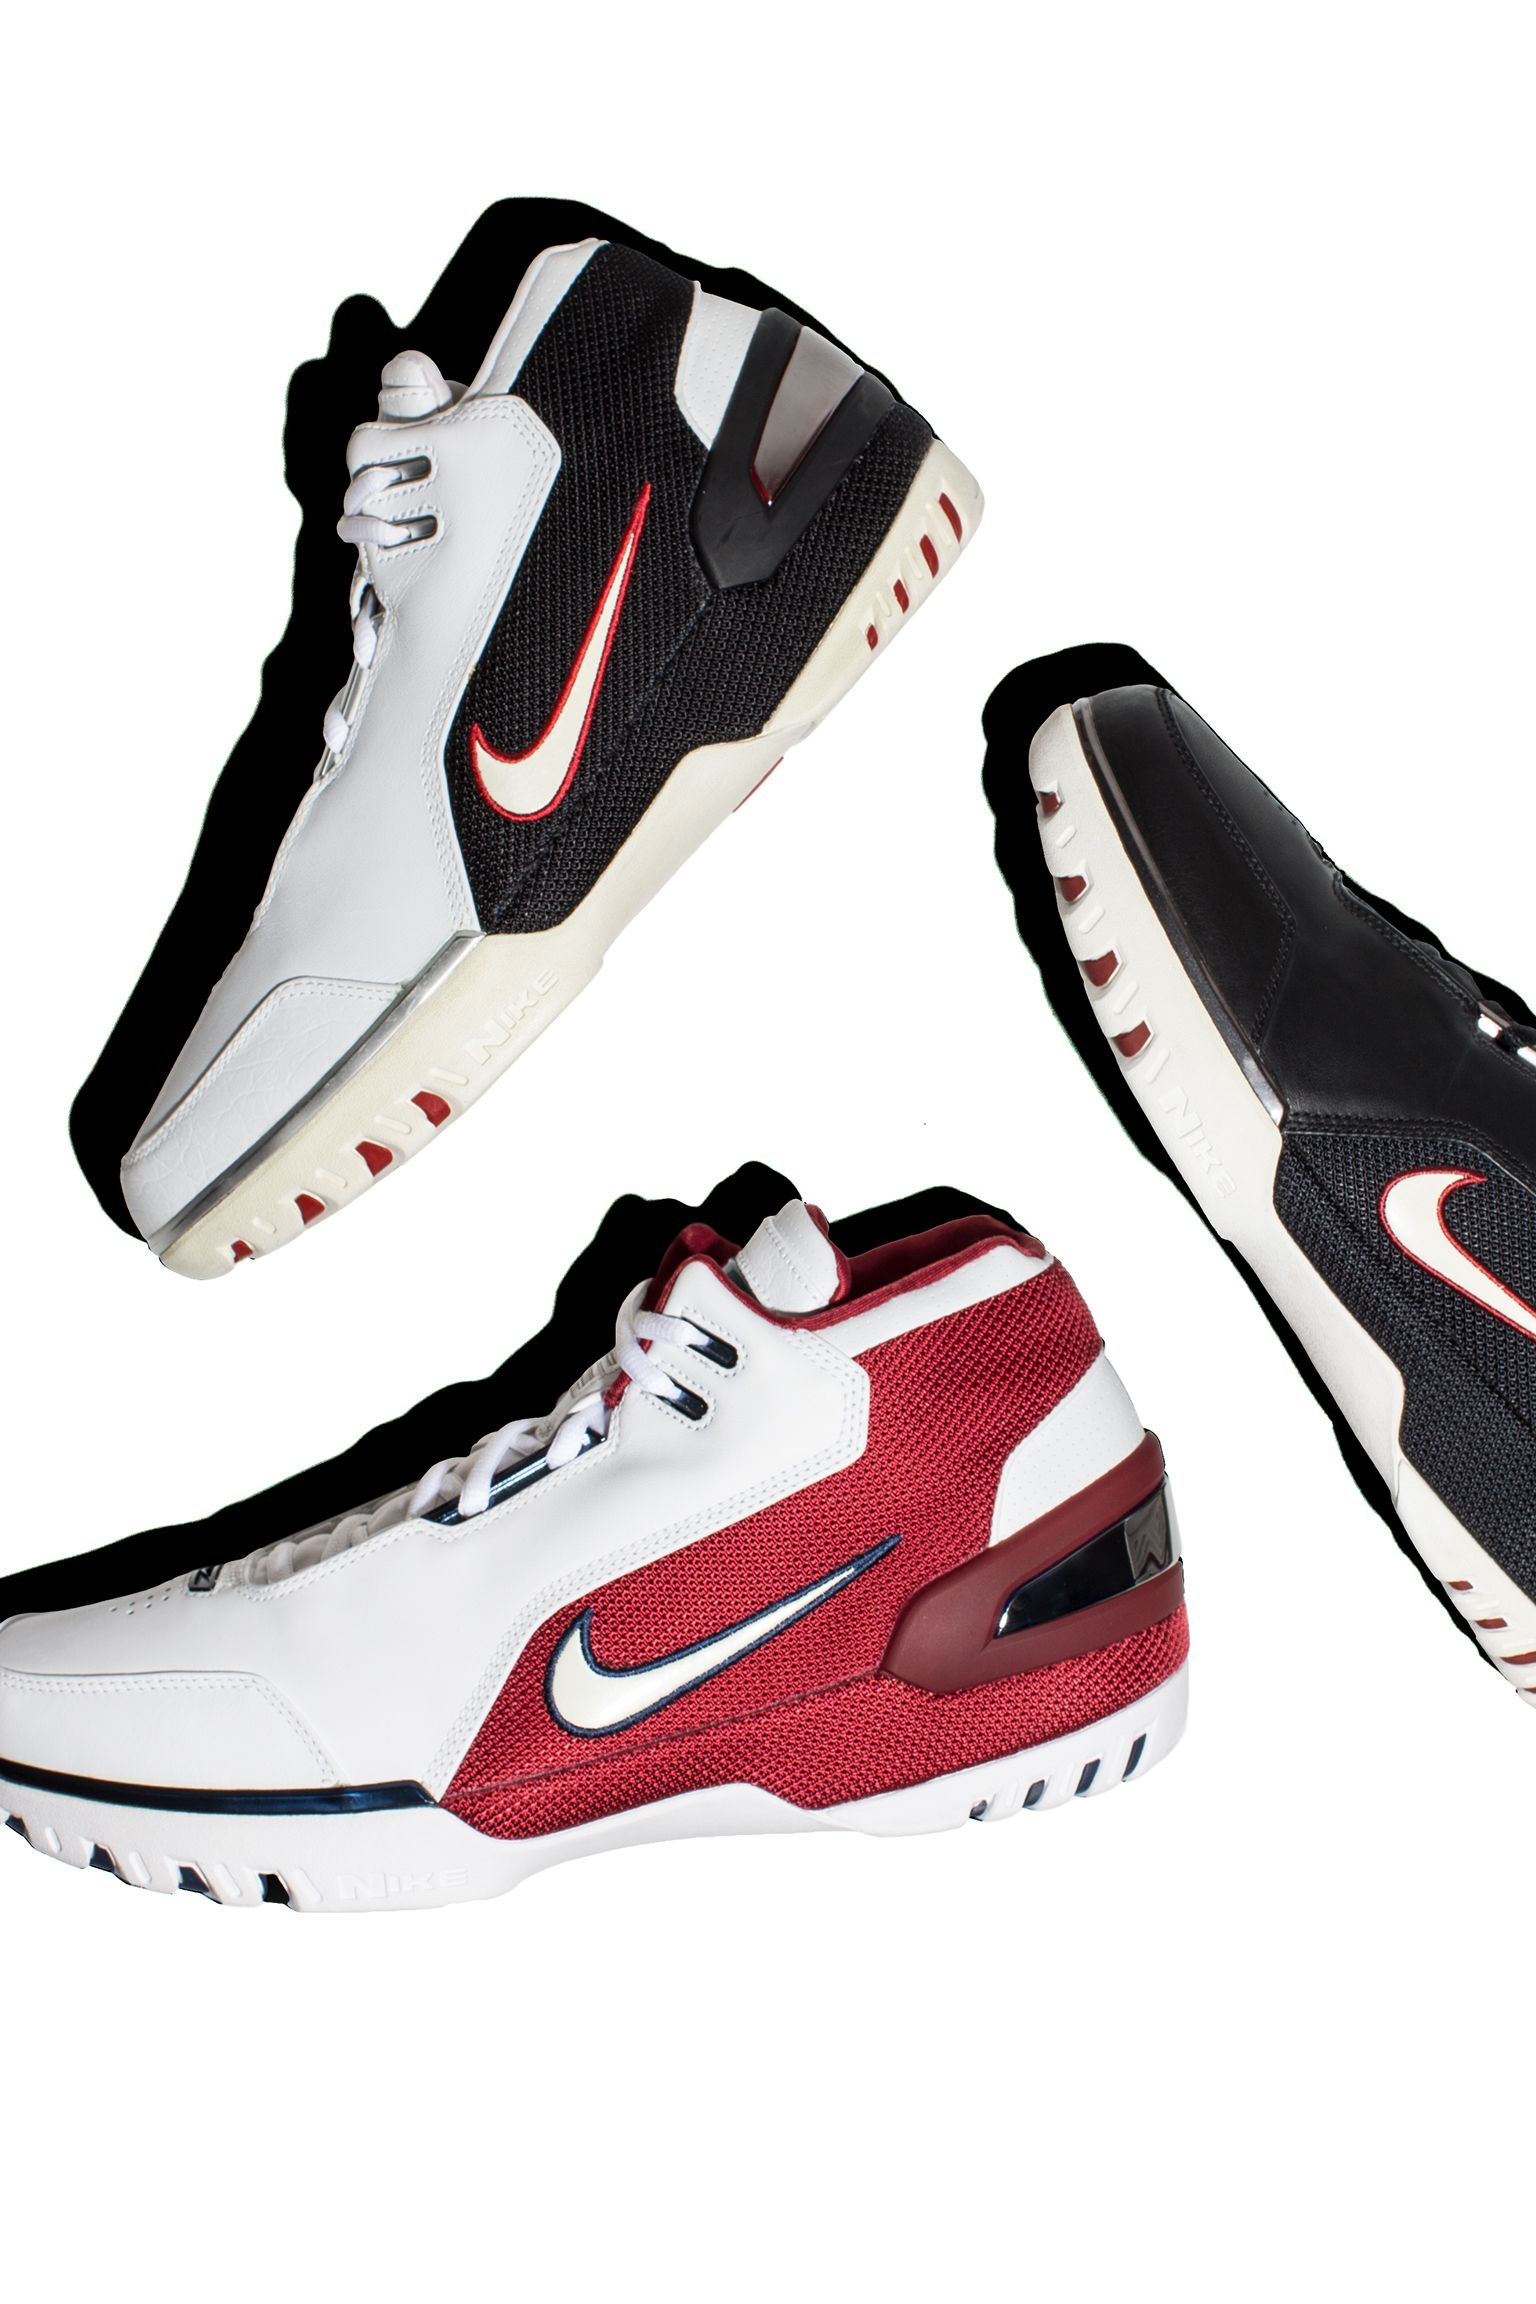 À l'origine du design : Nike Air Zoom Generation